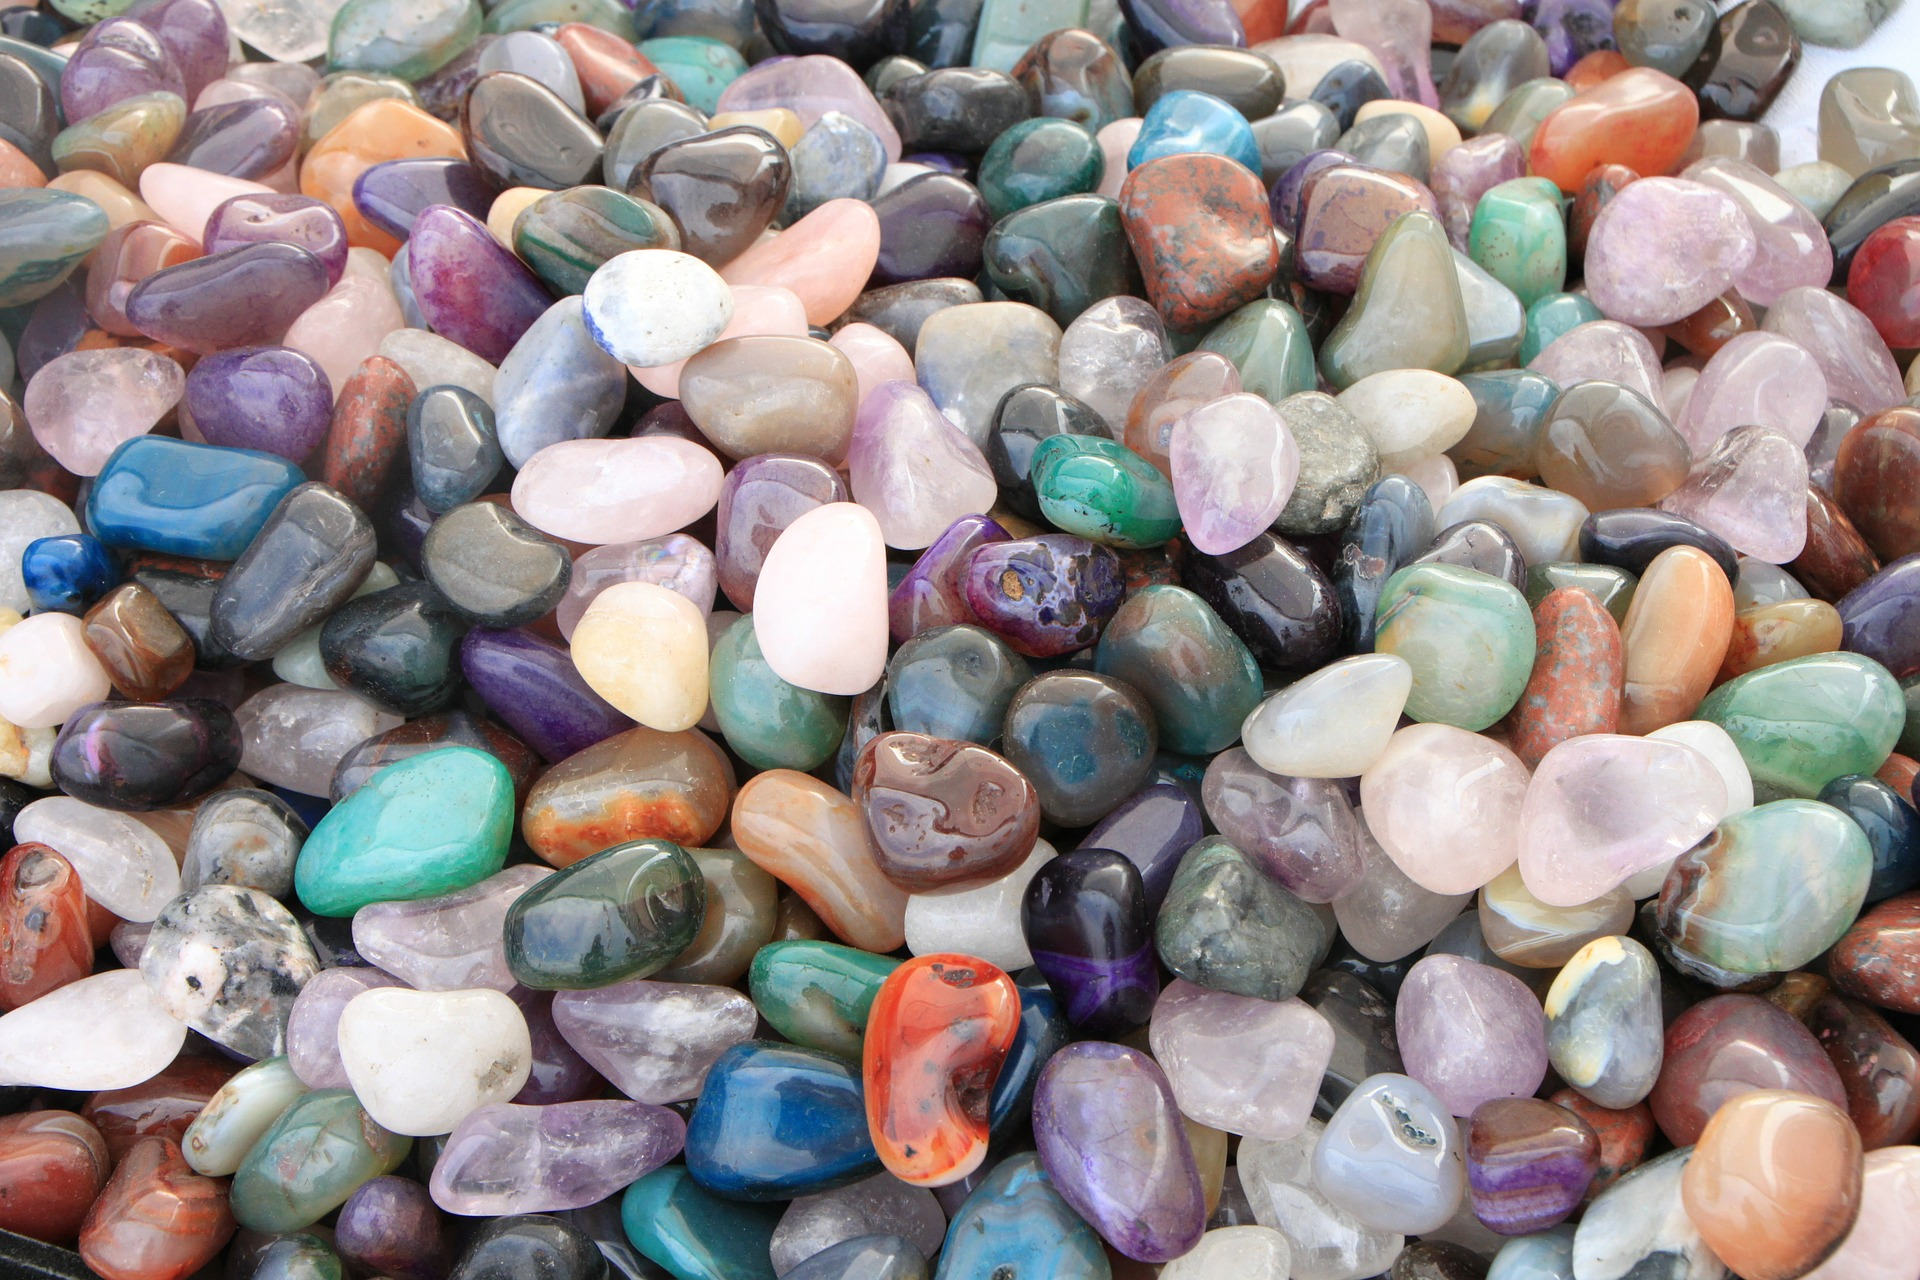 10 Fascinating Facts About Rocks Minerals And Gemstones